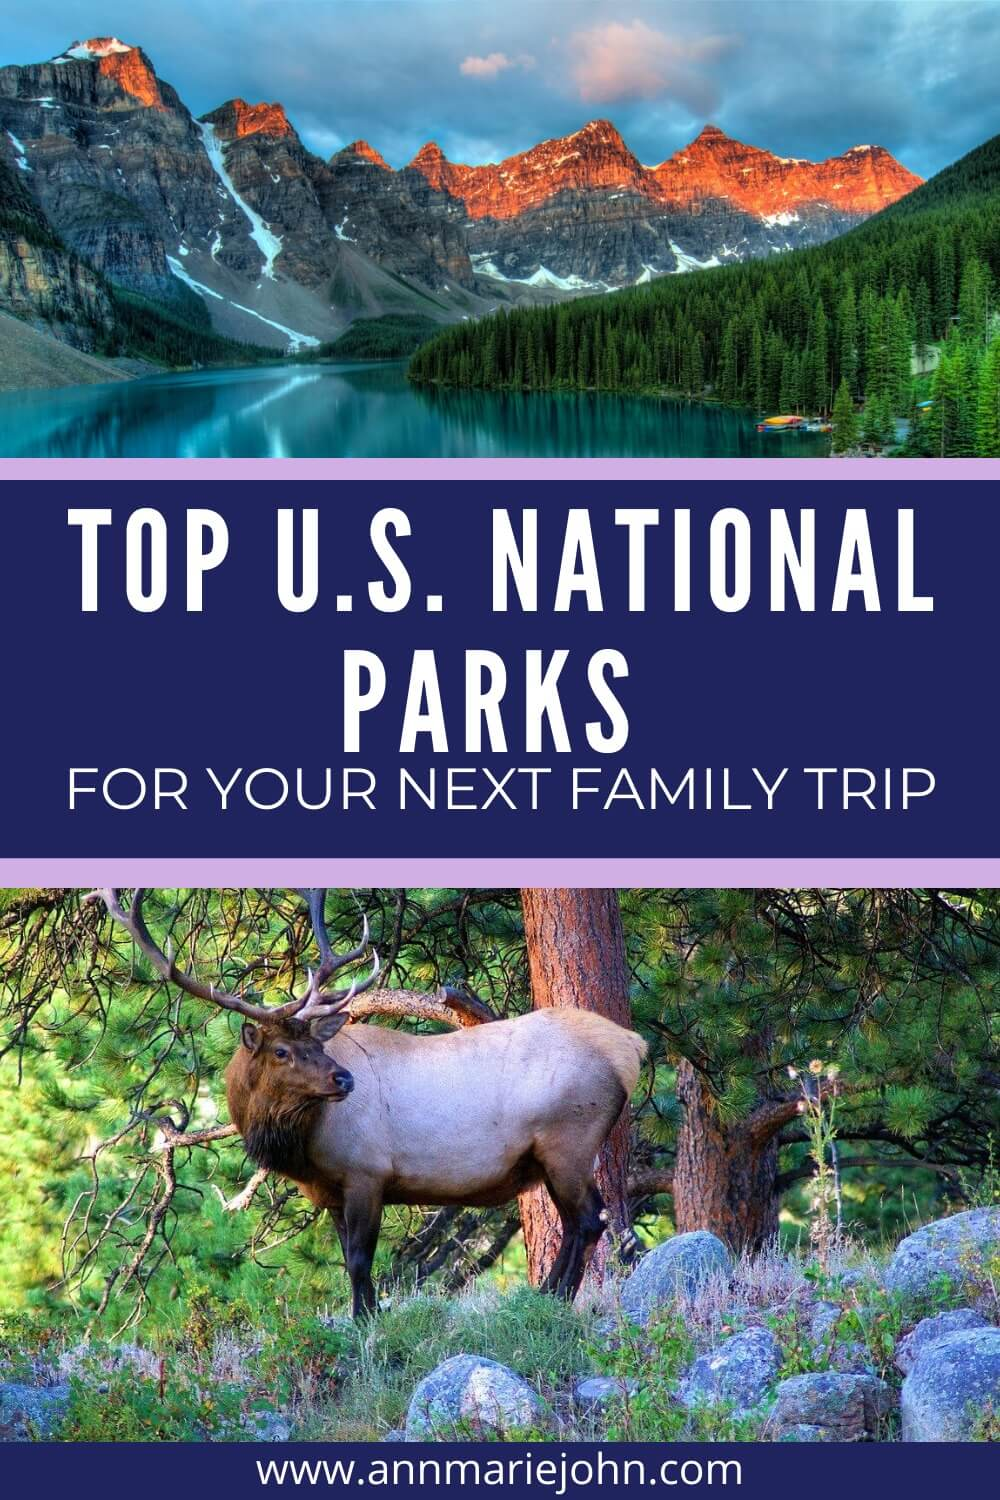 Top US National Parks for your next family trip